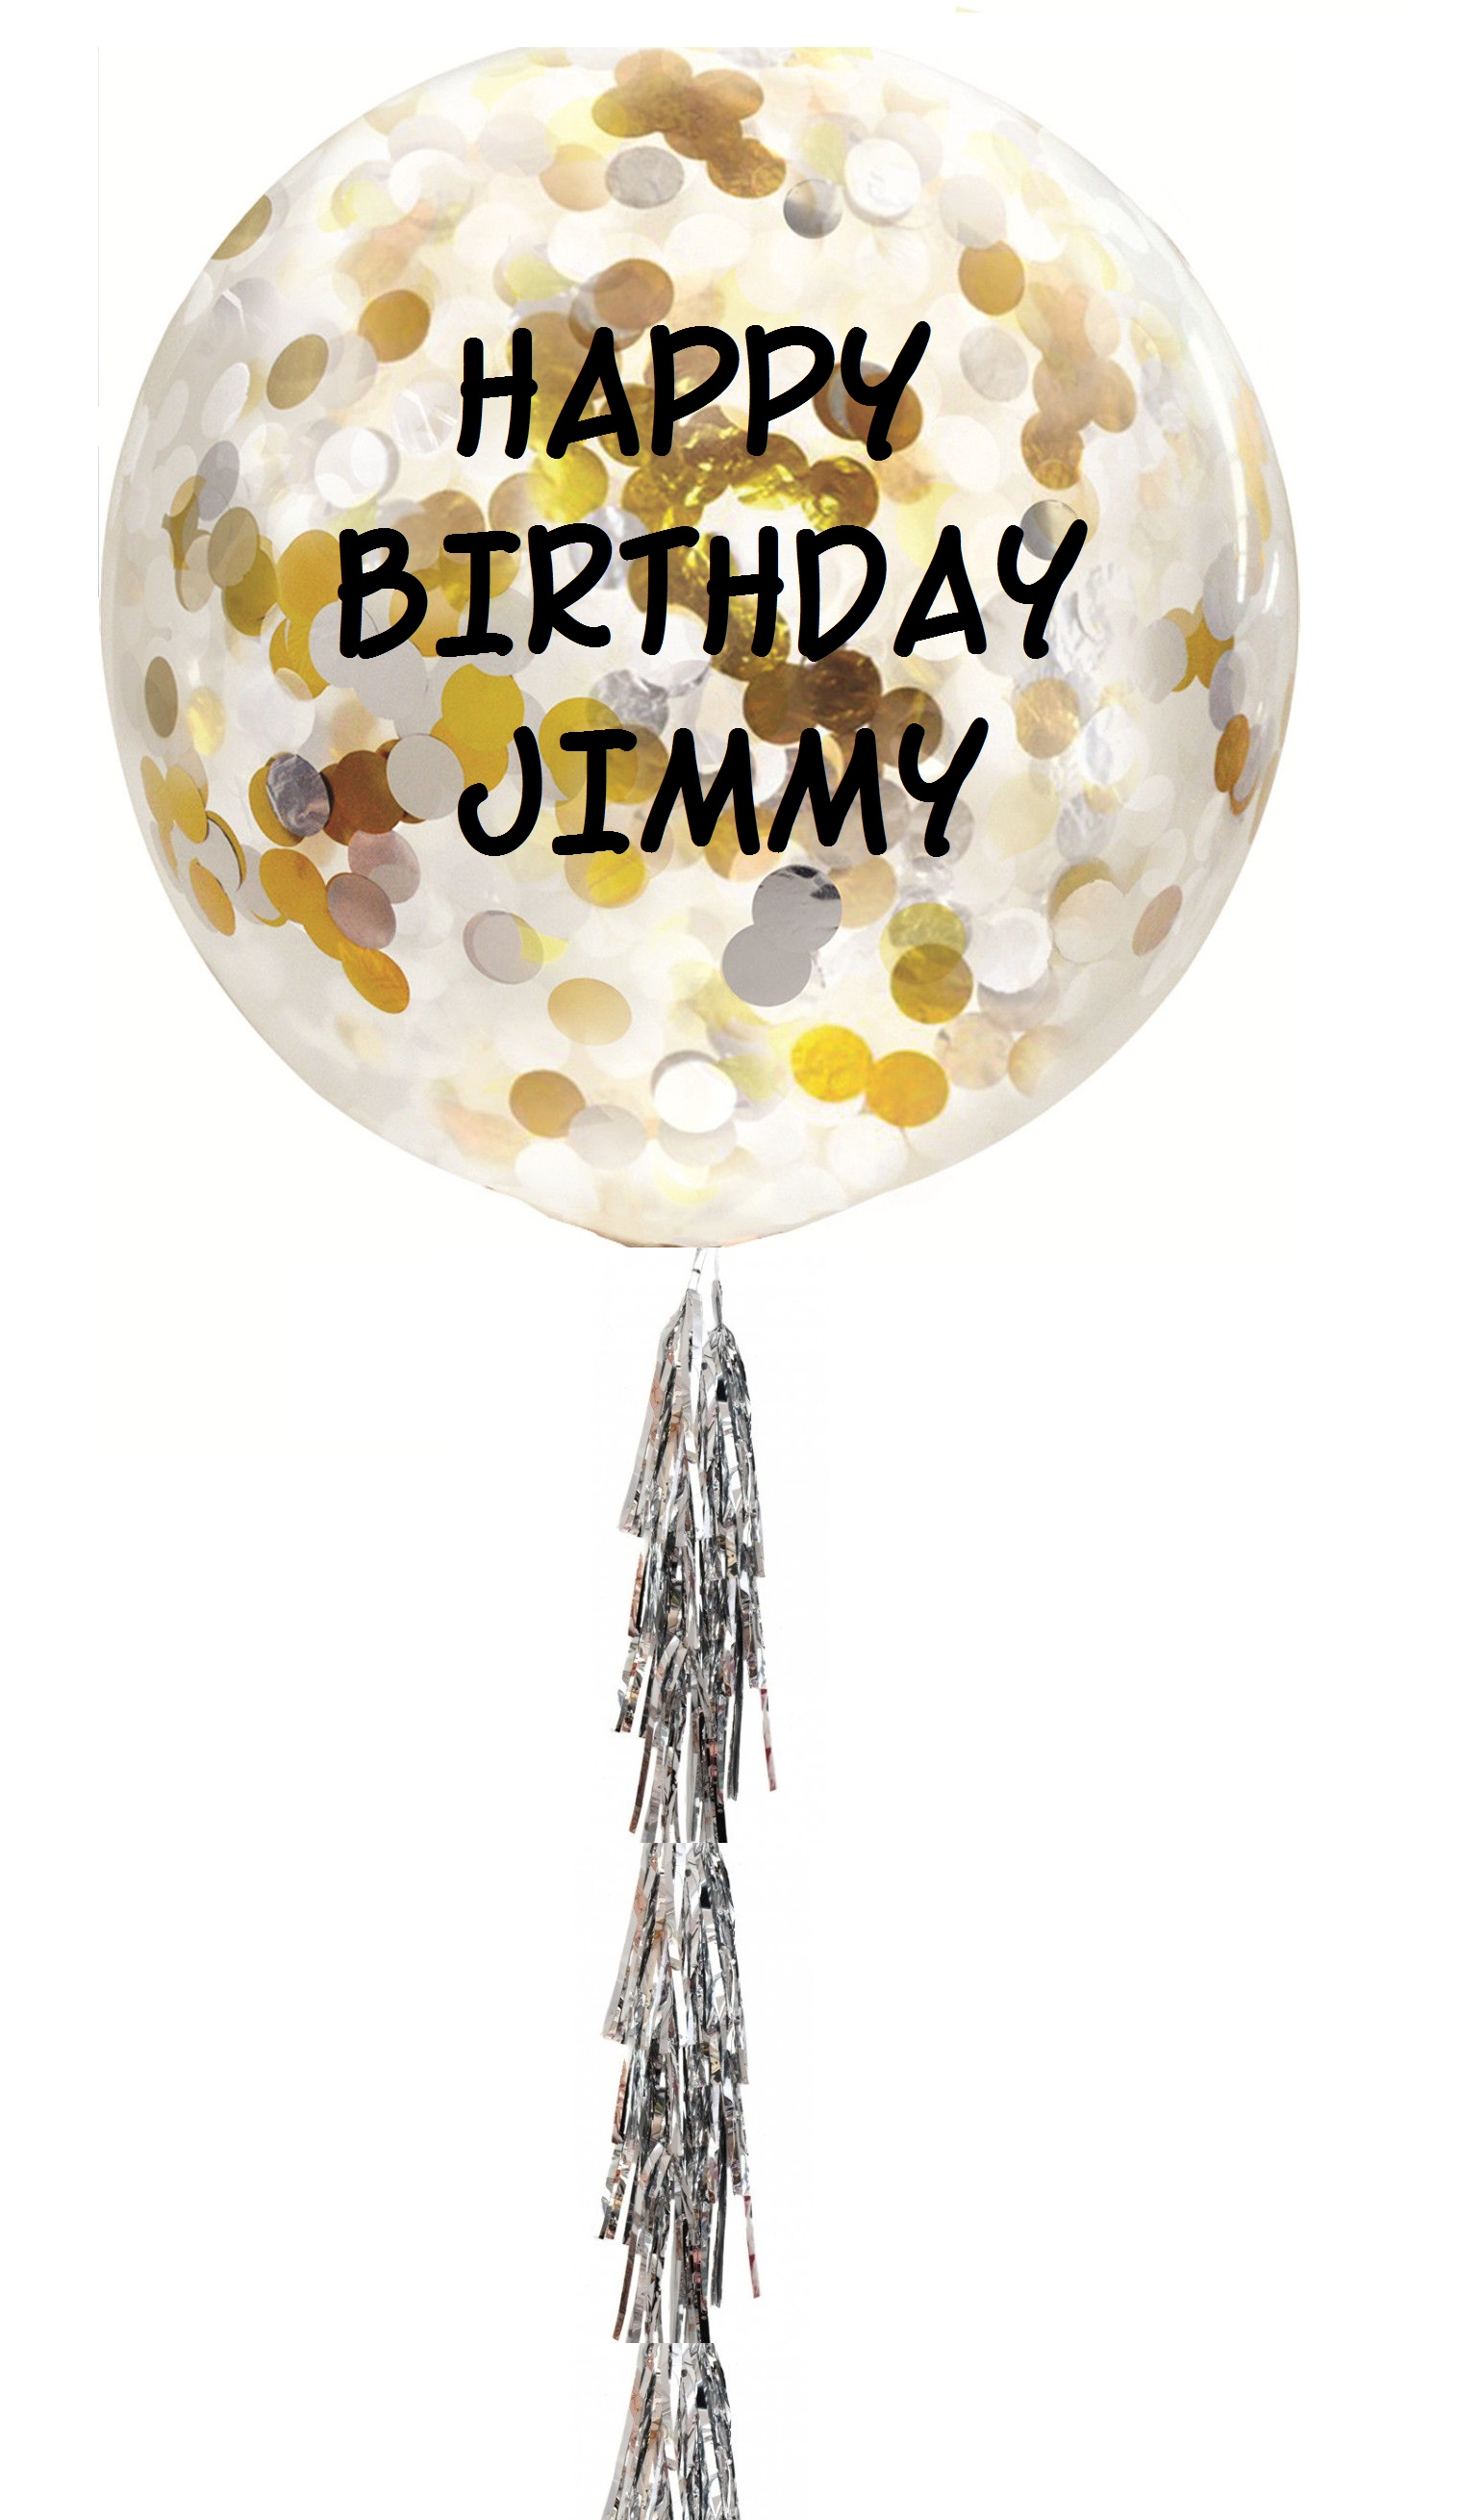 Jumbo latex balloons